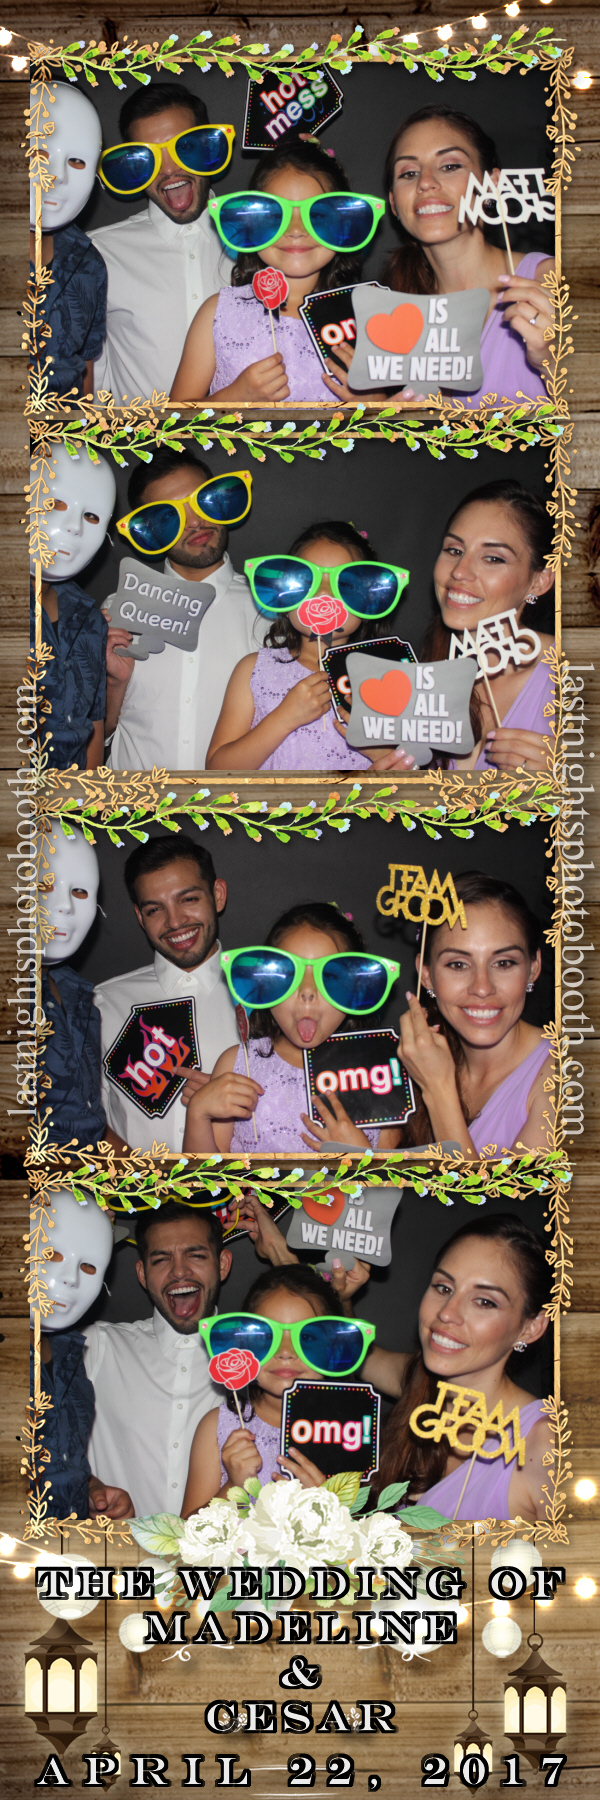 Photo Booth Rental For Madeline and Cesar Wedding_01